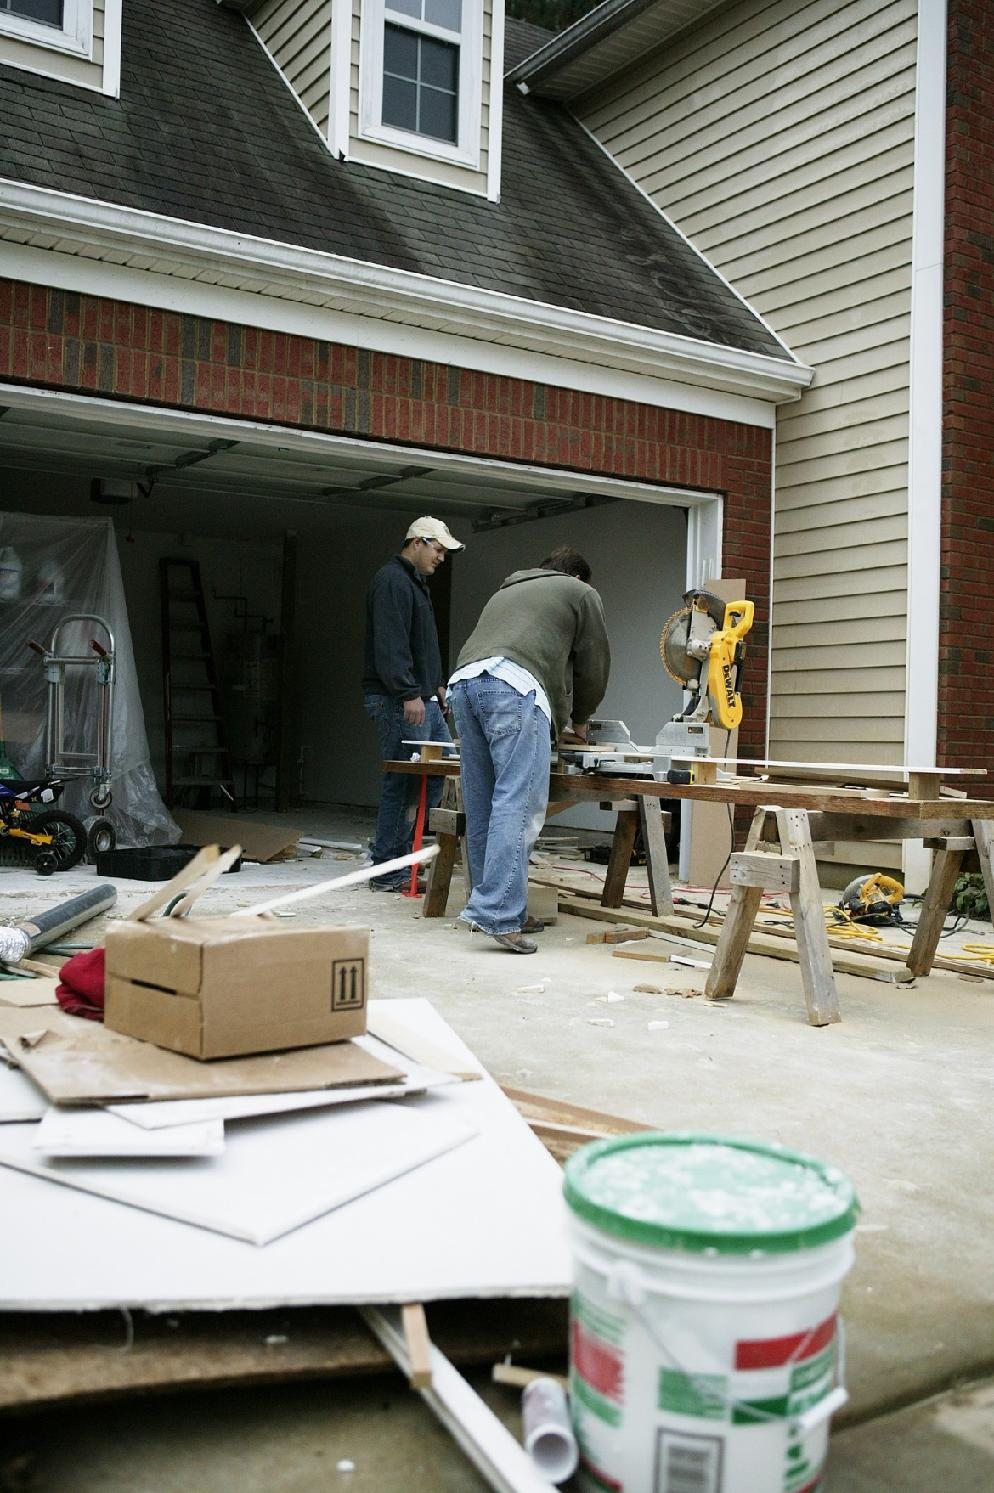 http://upload.wikimedia.org/wikipedia/commons/d/d9/FEMA_-_42429_-_Home_Repair_after_Flood.jpg